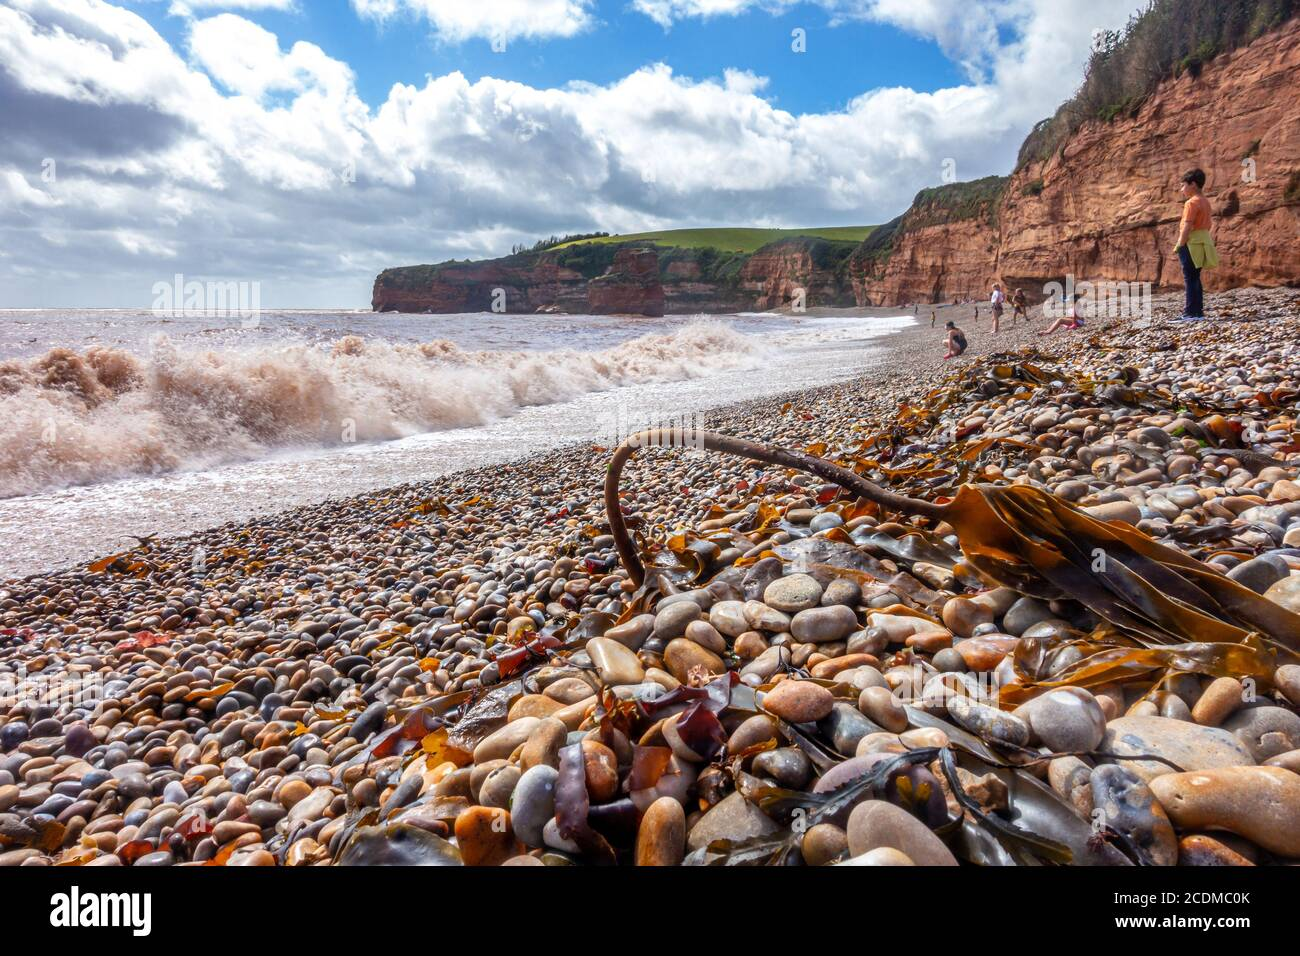 waves-roll-onto-the-beach-at-ladram-bay-near-exmouth-in-devon-england-people-are-on-the-beach-on-holiday-2CDMC0K.jpg